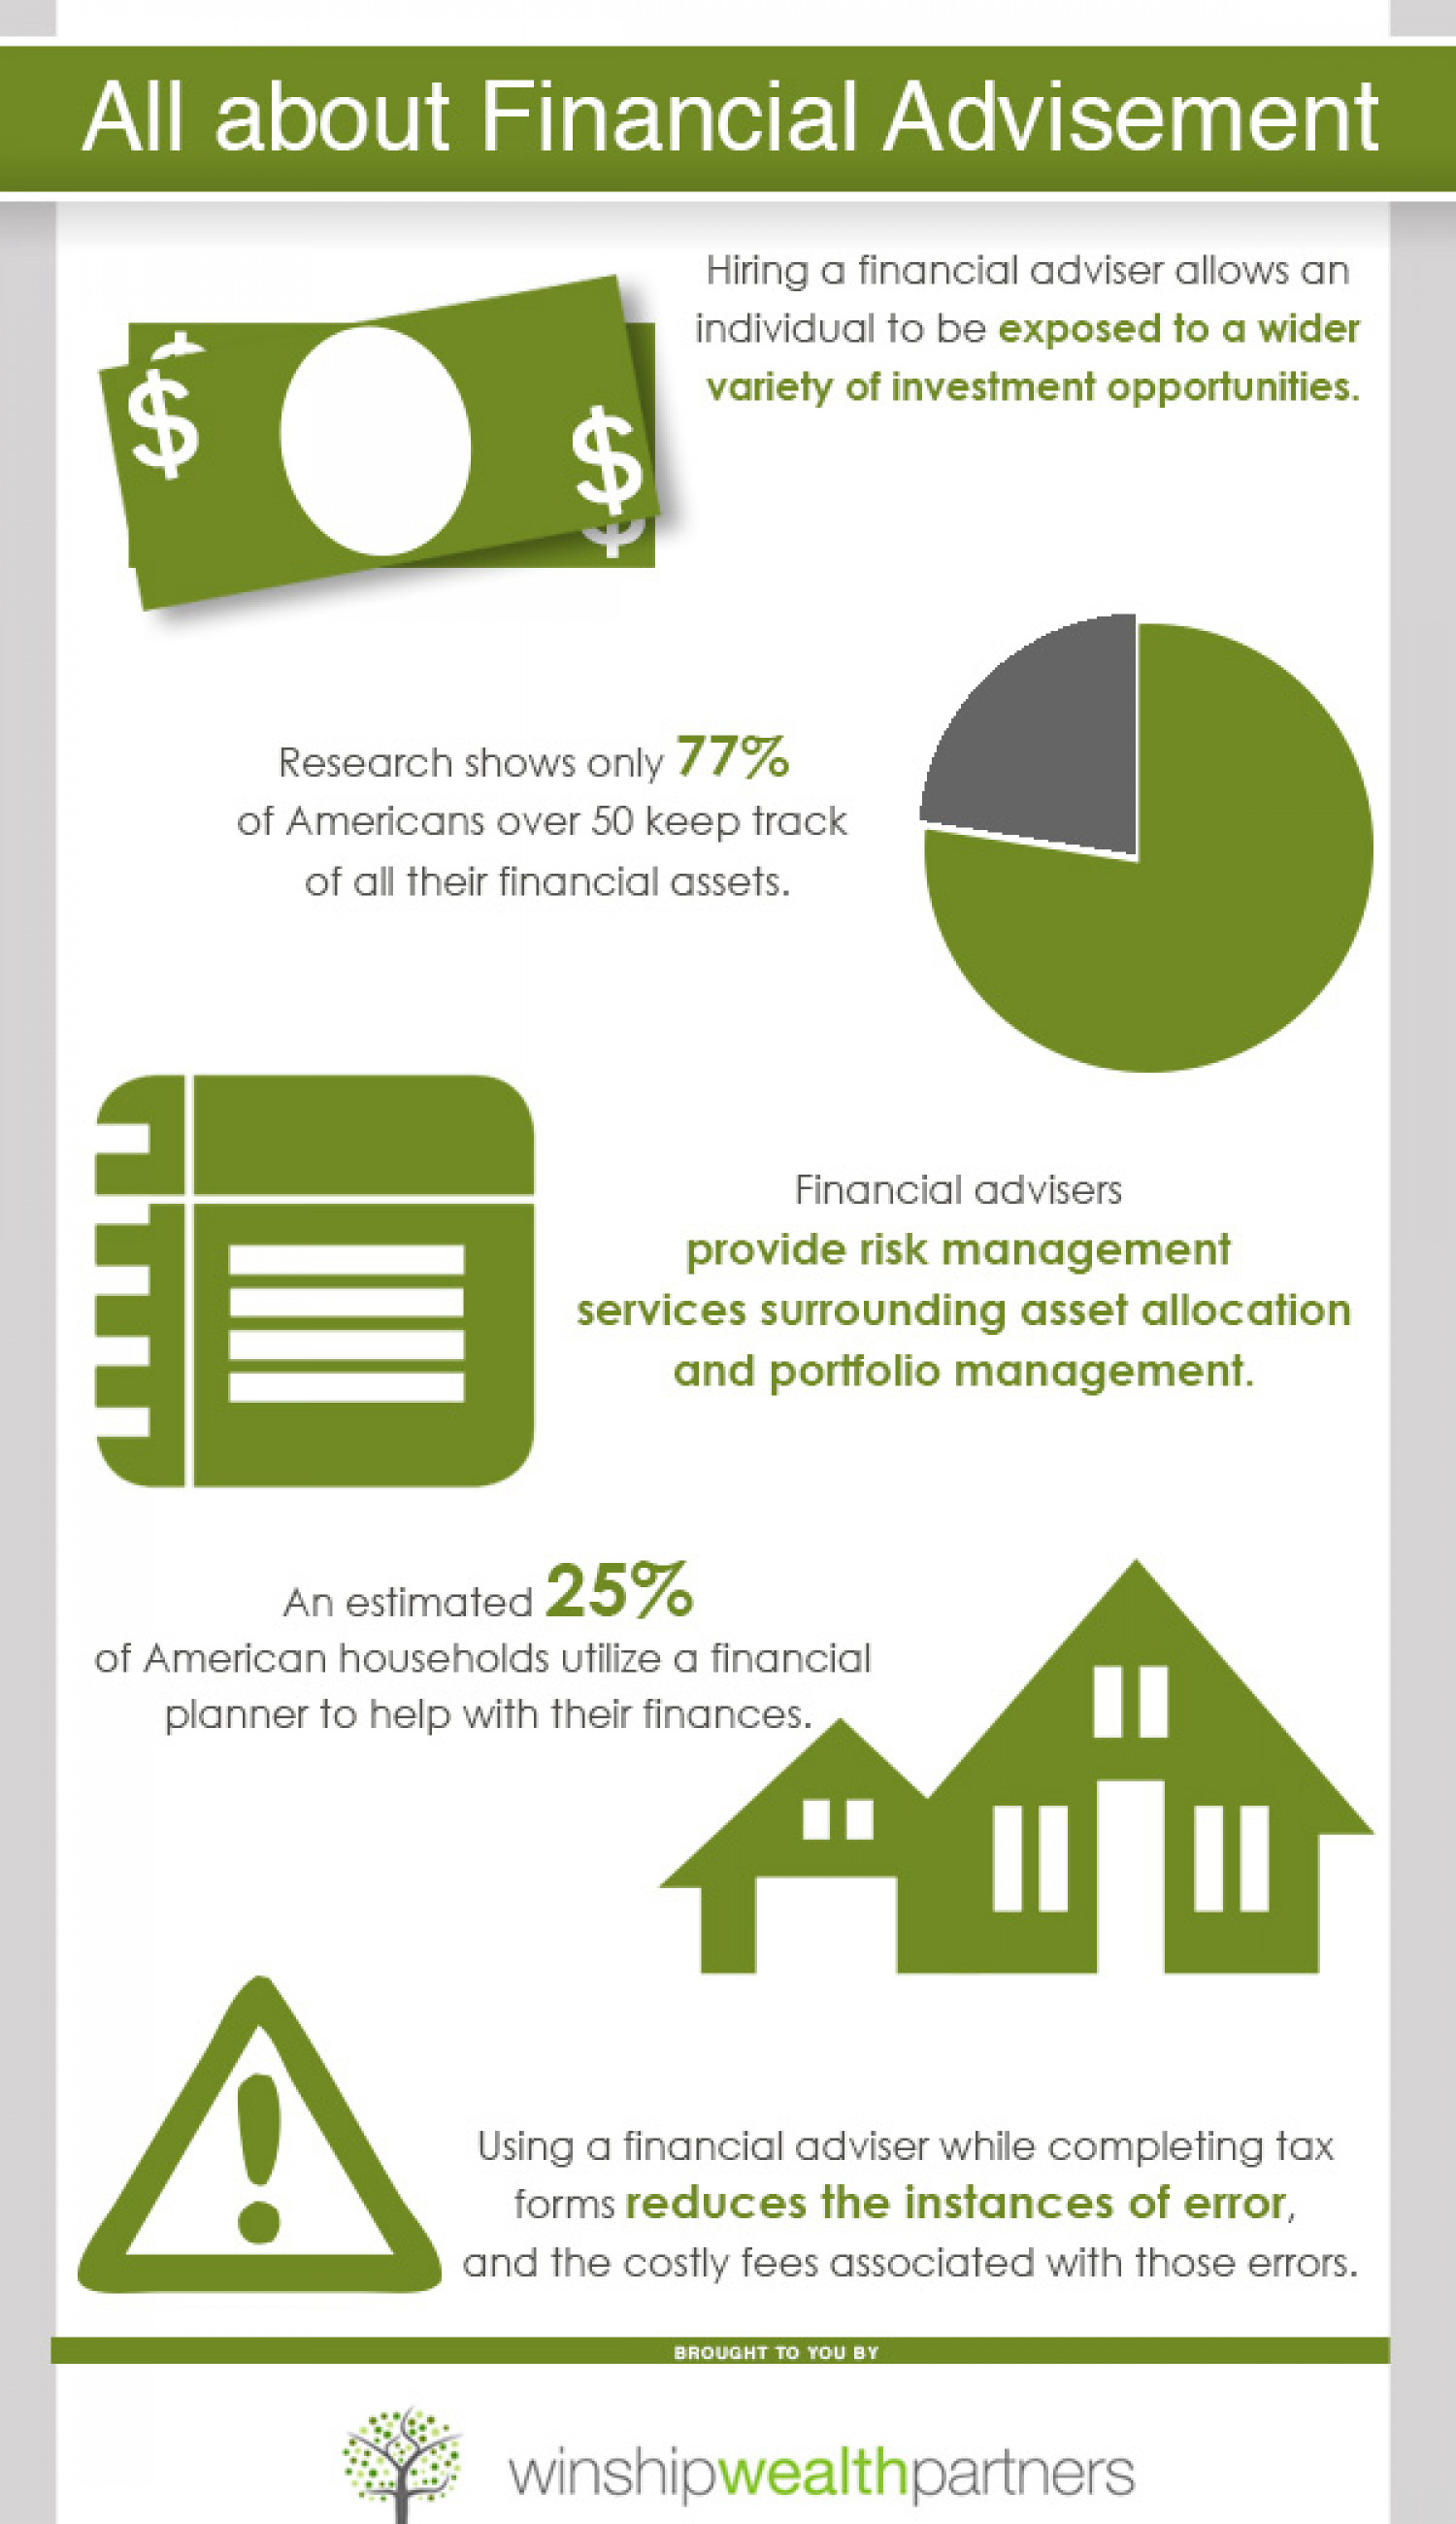 All About Financial Advisement Infographic